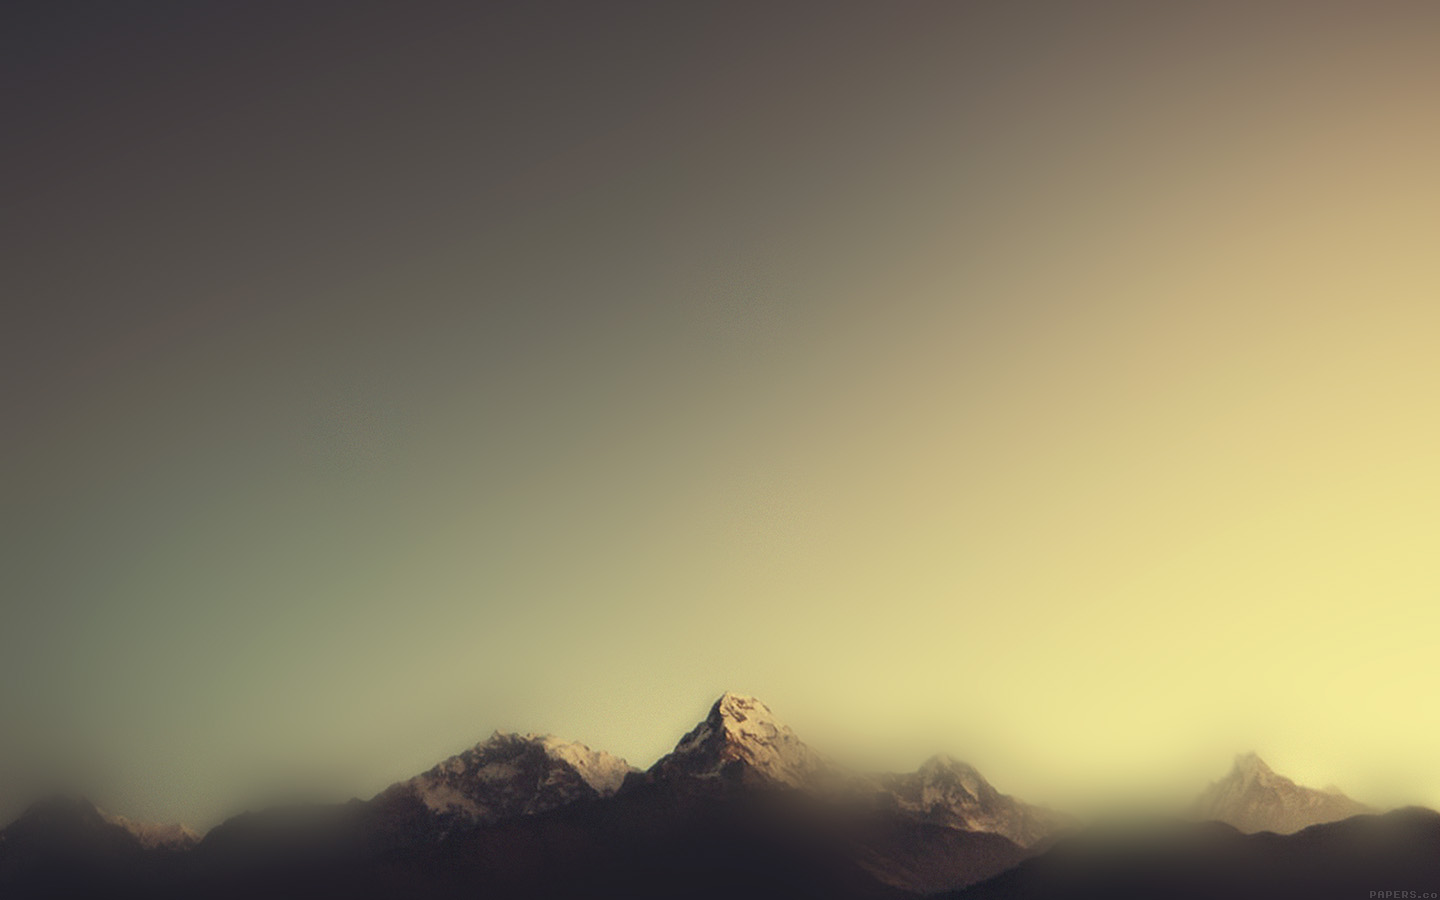 ml07-mountain-blur-minimal-nature - Papers.co